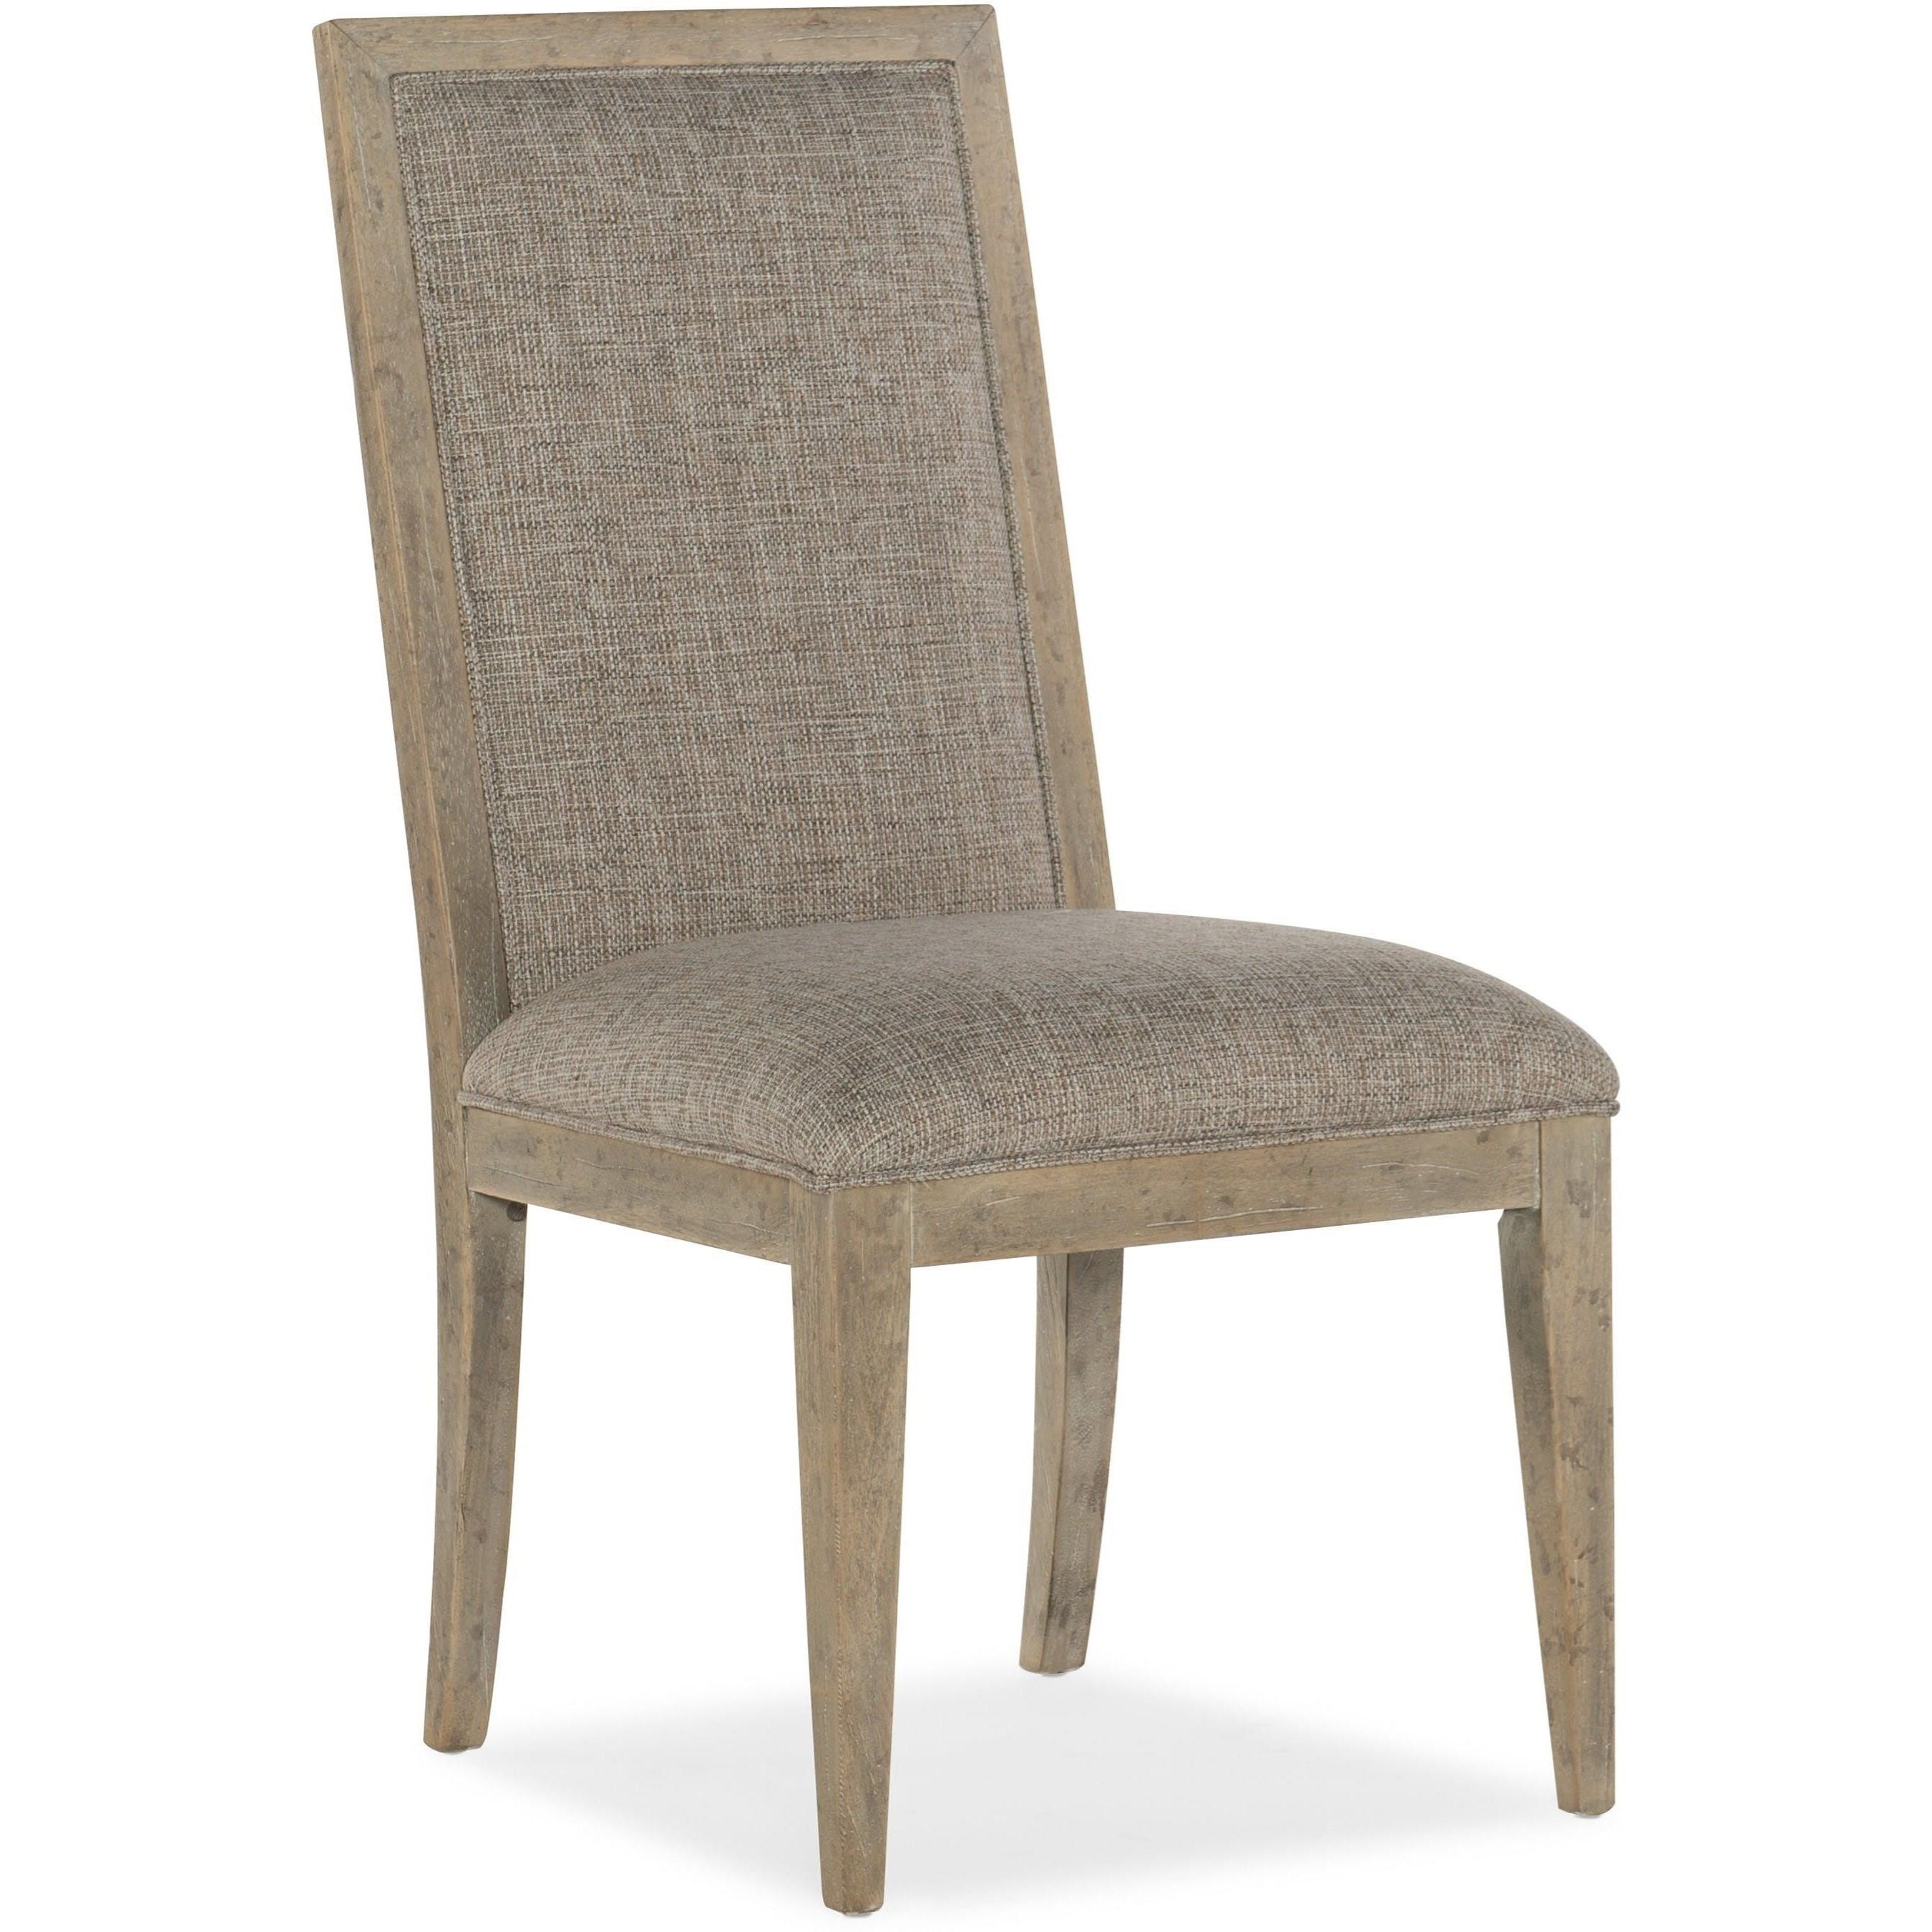 American Life-Amani Upholstered Side Chair by Hooker Furniture at Alison Craig Home Furnishings